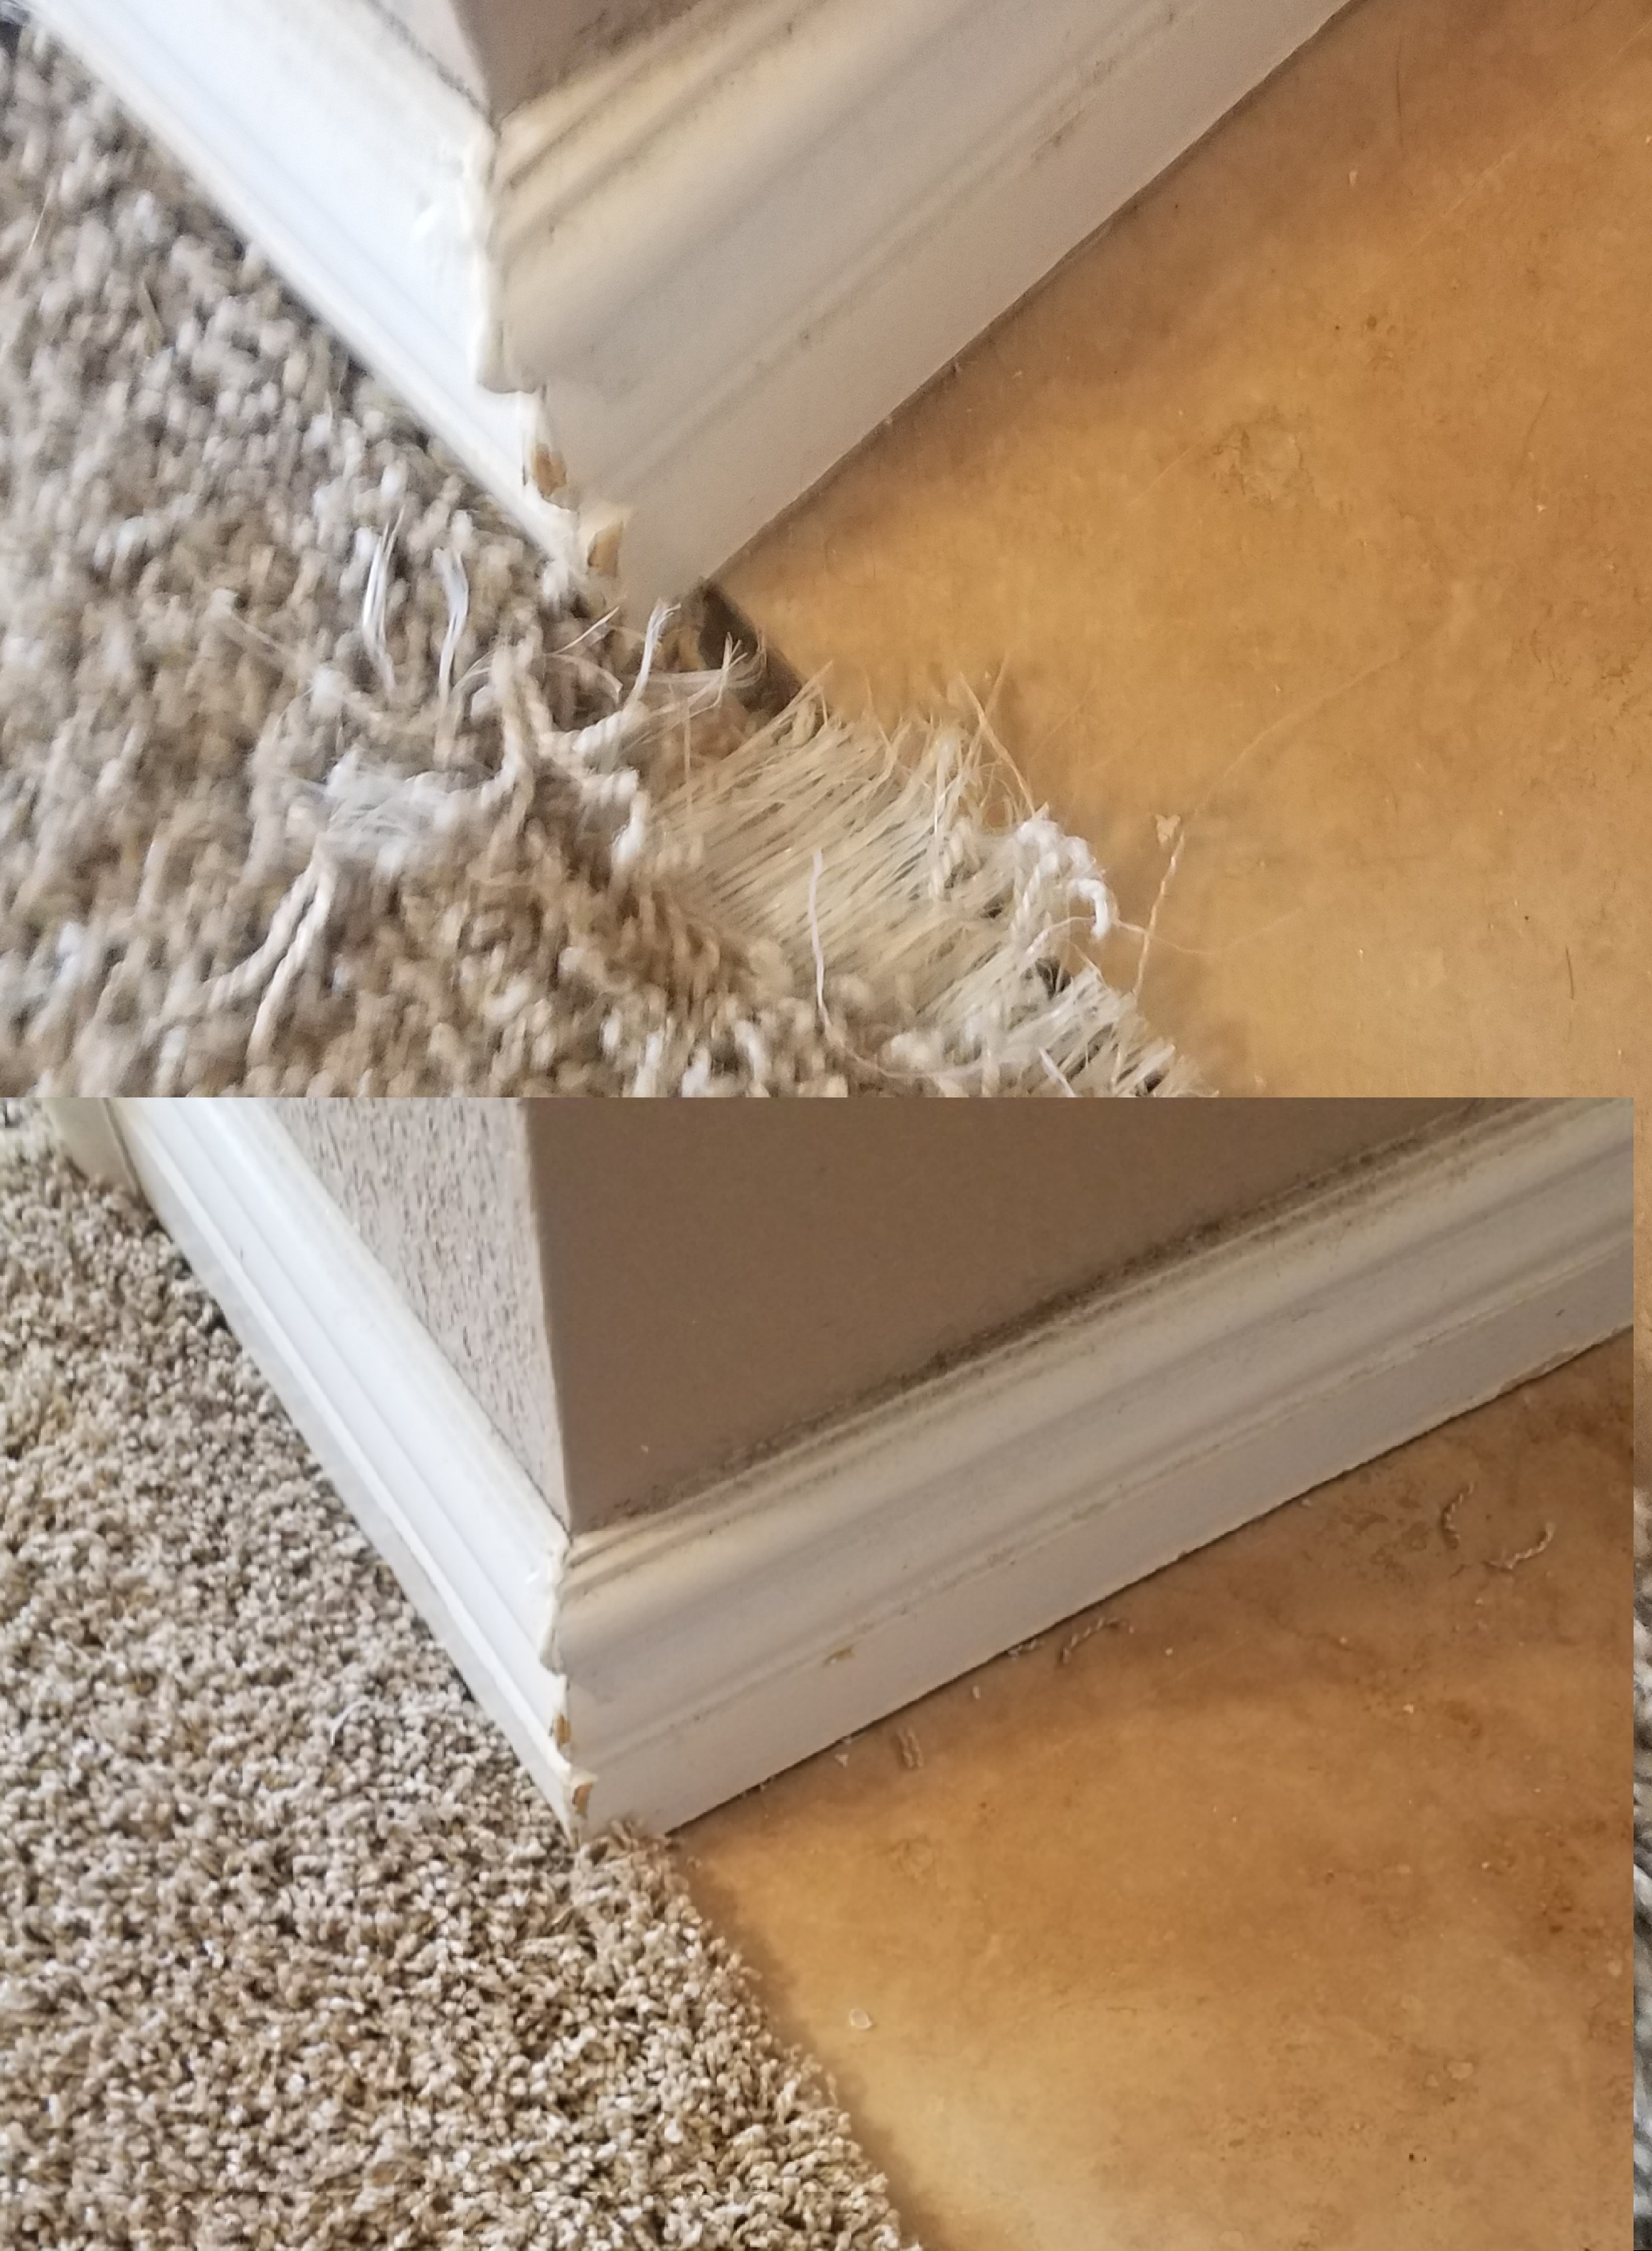 Carpet pet damage patch